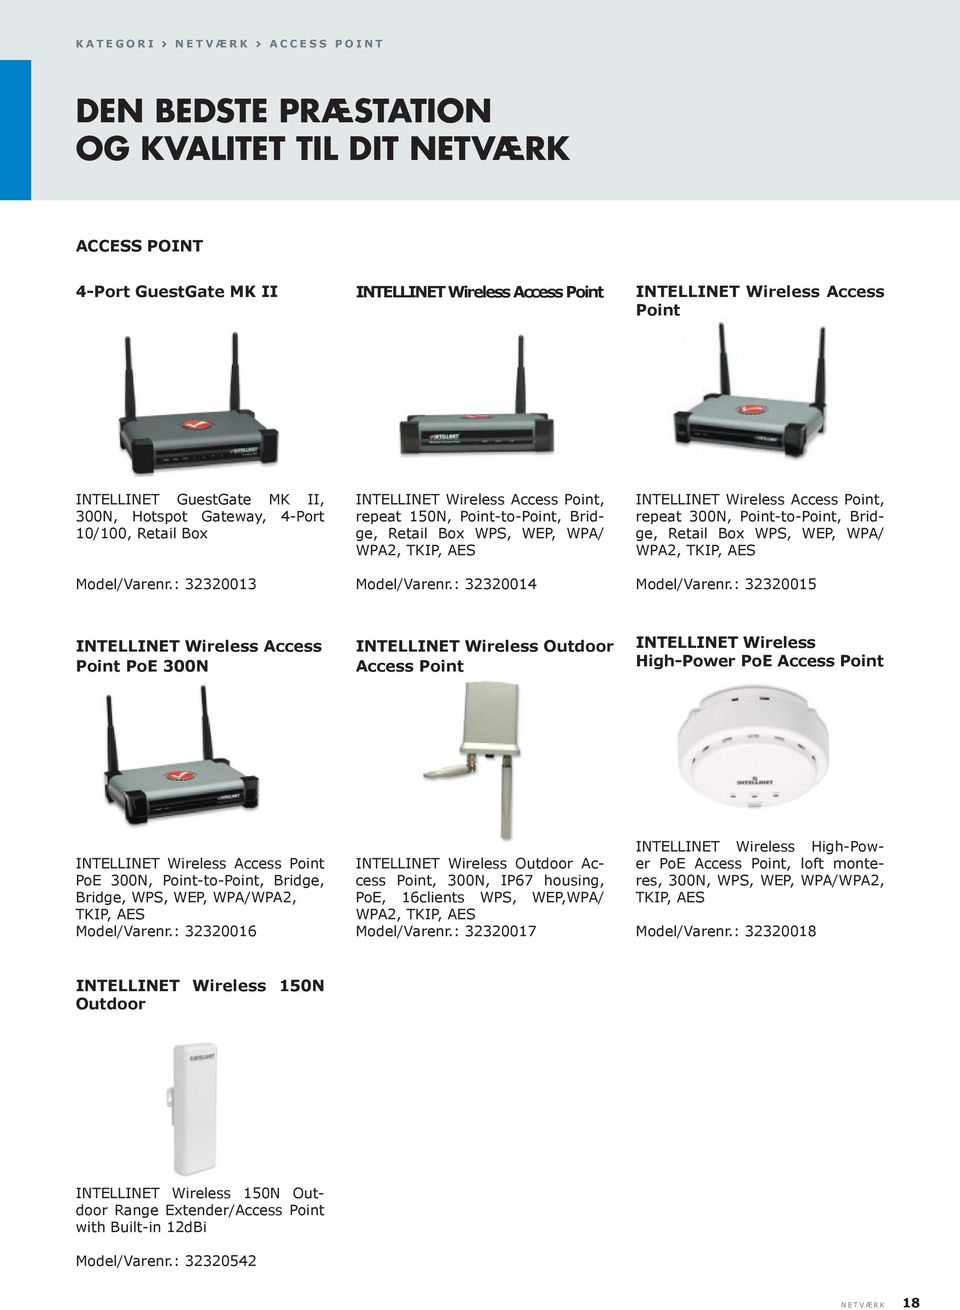 : 32320013 INTELLINET Wireless Access Point, repeat 150N, Point-to-Point, Bridge, Retail Box WPS, WEP, WPA/ WPA2, TKIP, AES Model/Varenr.